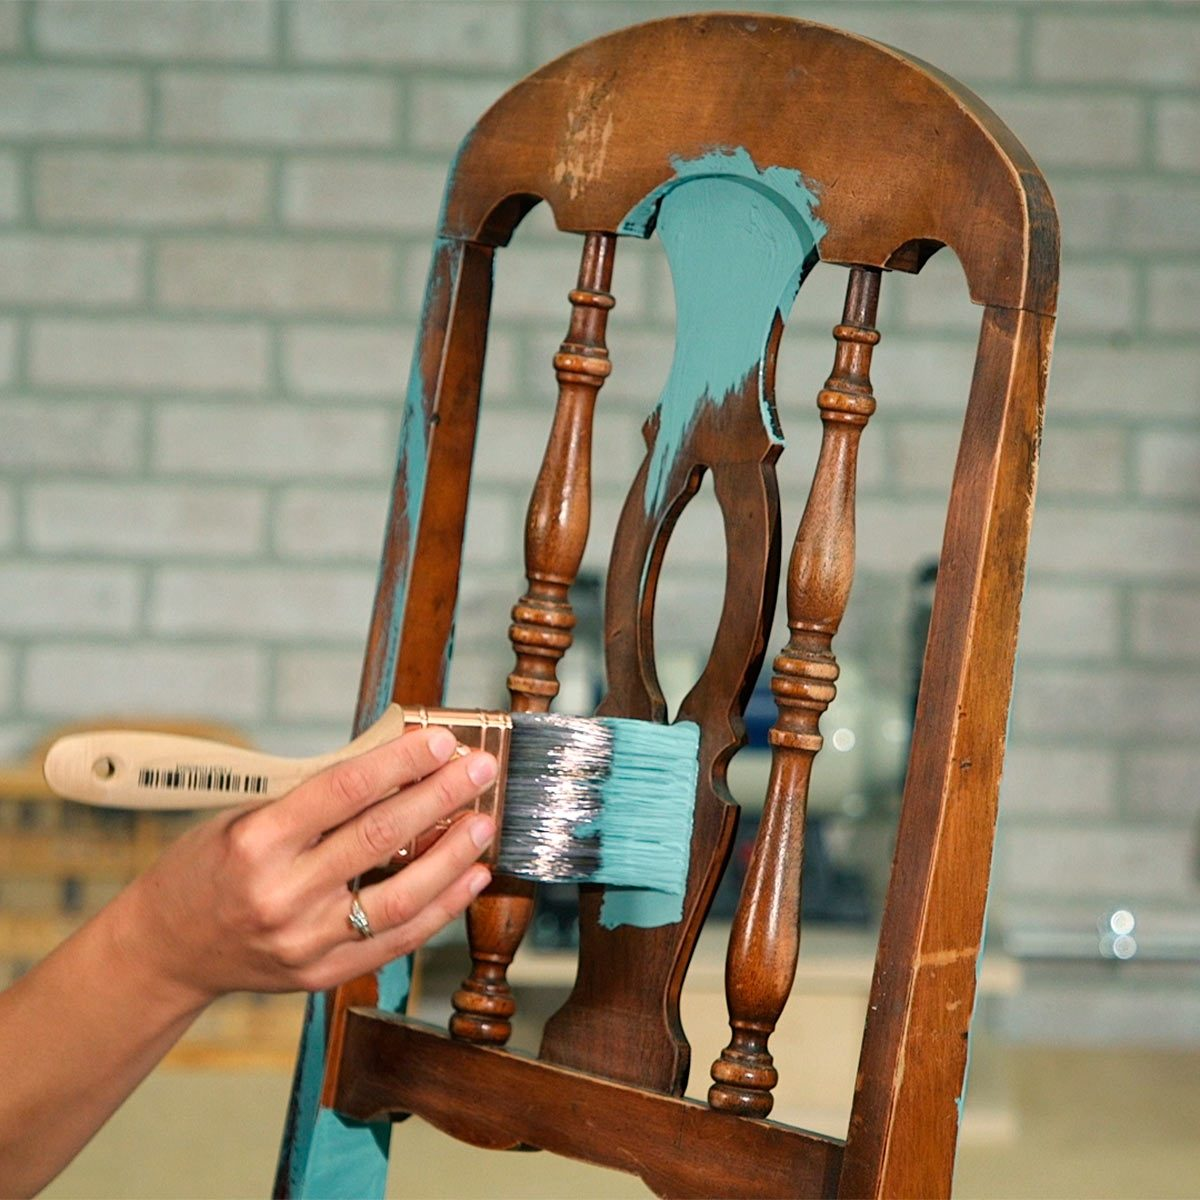 paint patina color onto secondhand chair